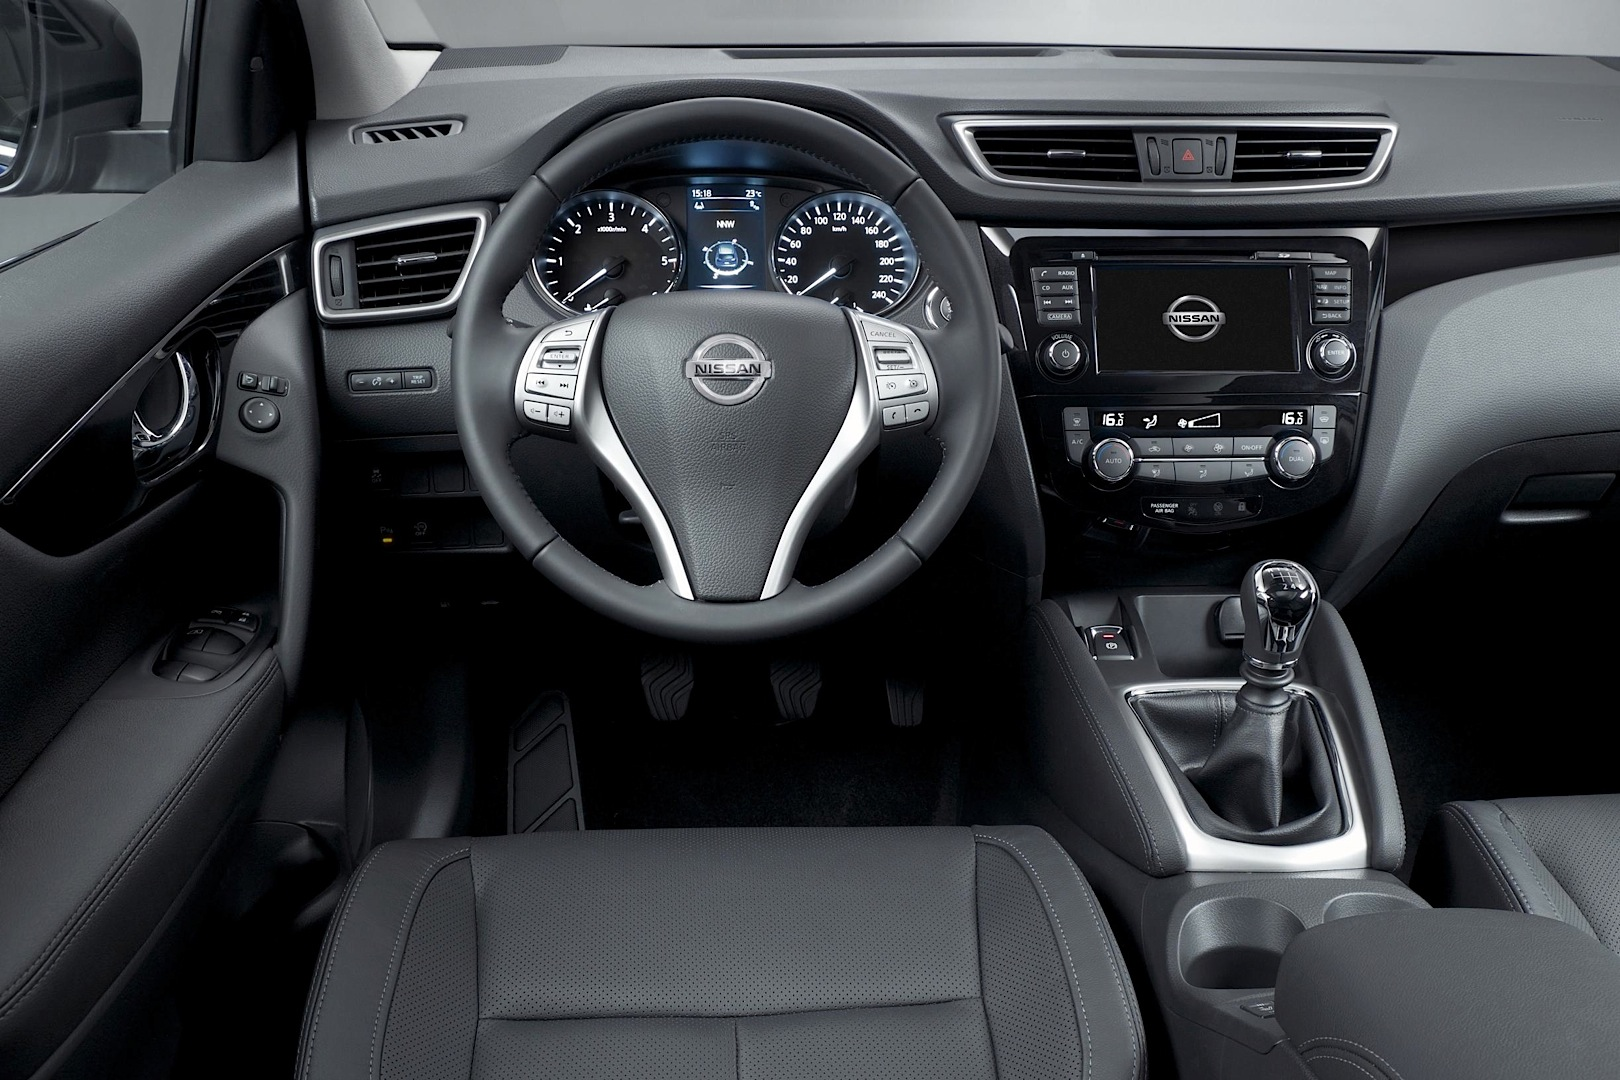 nissan qashqai pictures #6